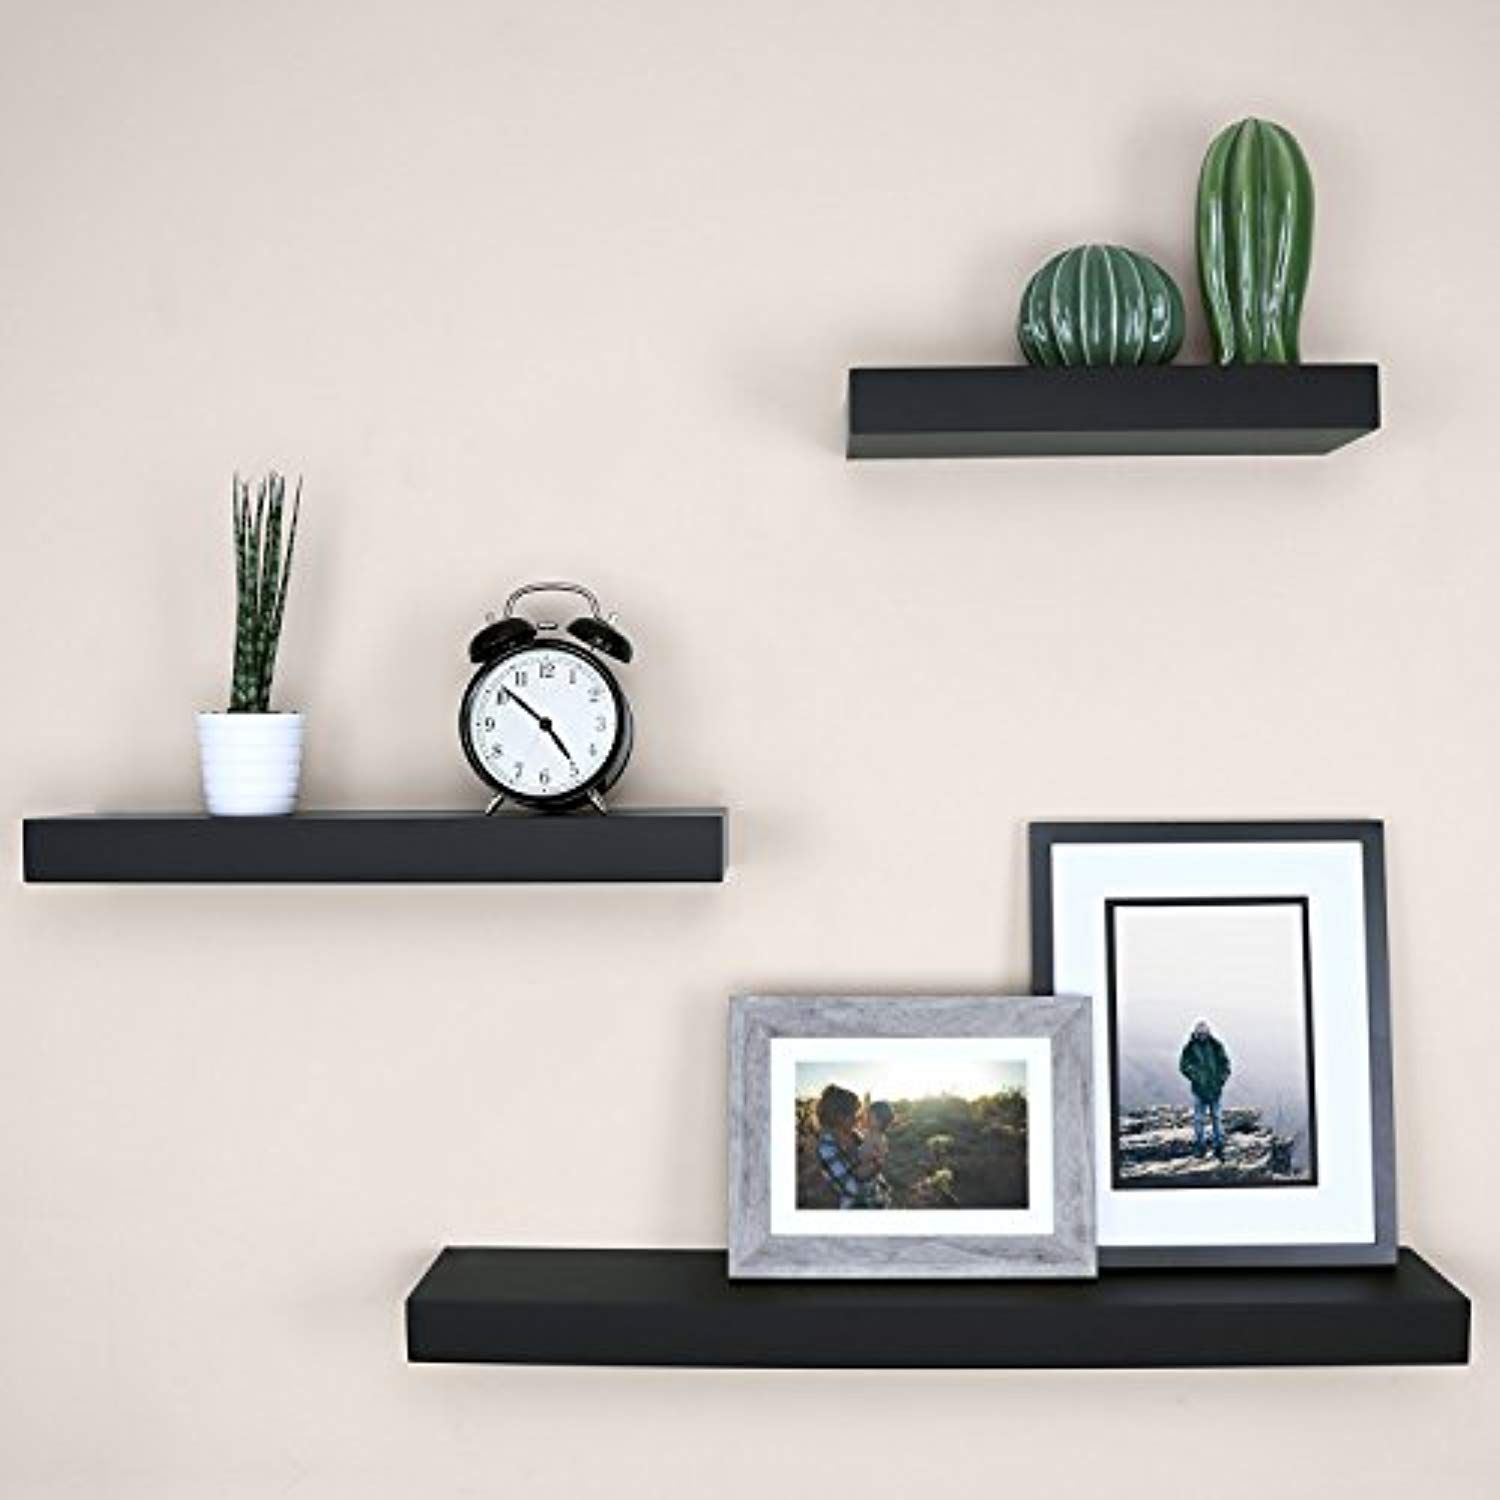 Ballucci Block Floating Wall Ledge 12 16 24 Set Of 3 Black To View Further For Black Floating Shelves Floating Shelf Decor Shelf Decor Living Room